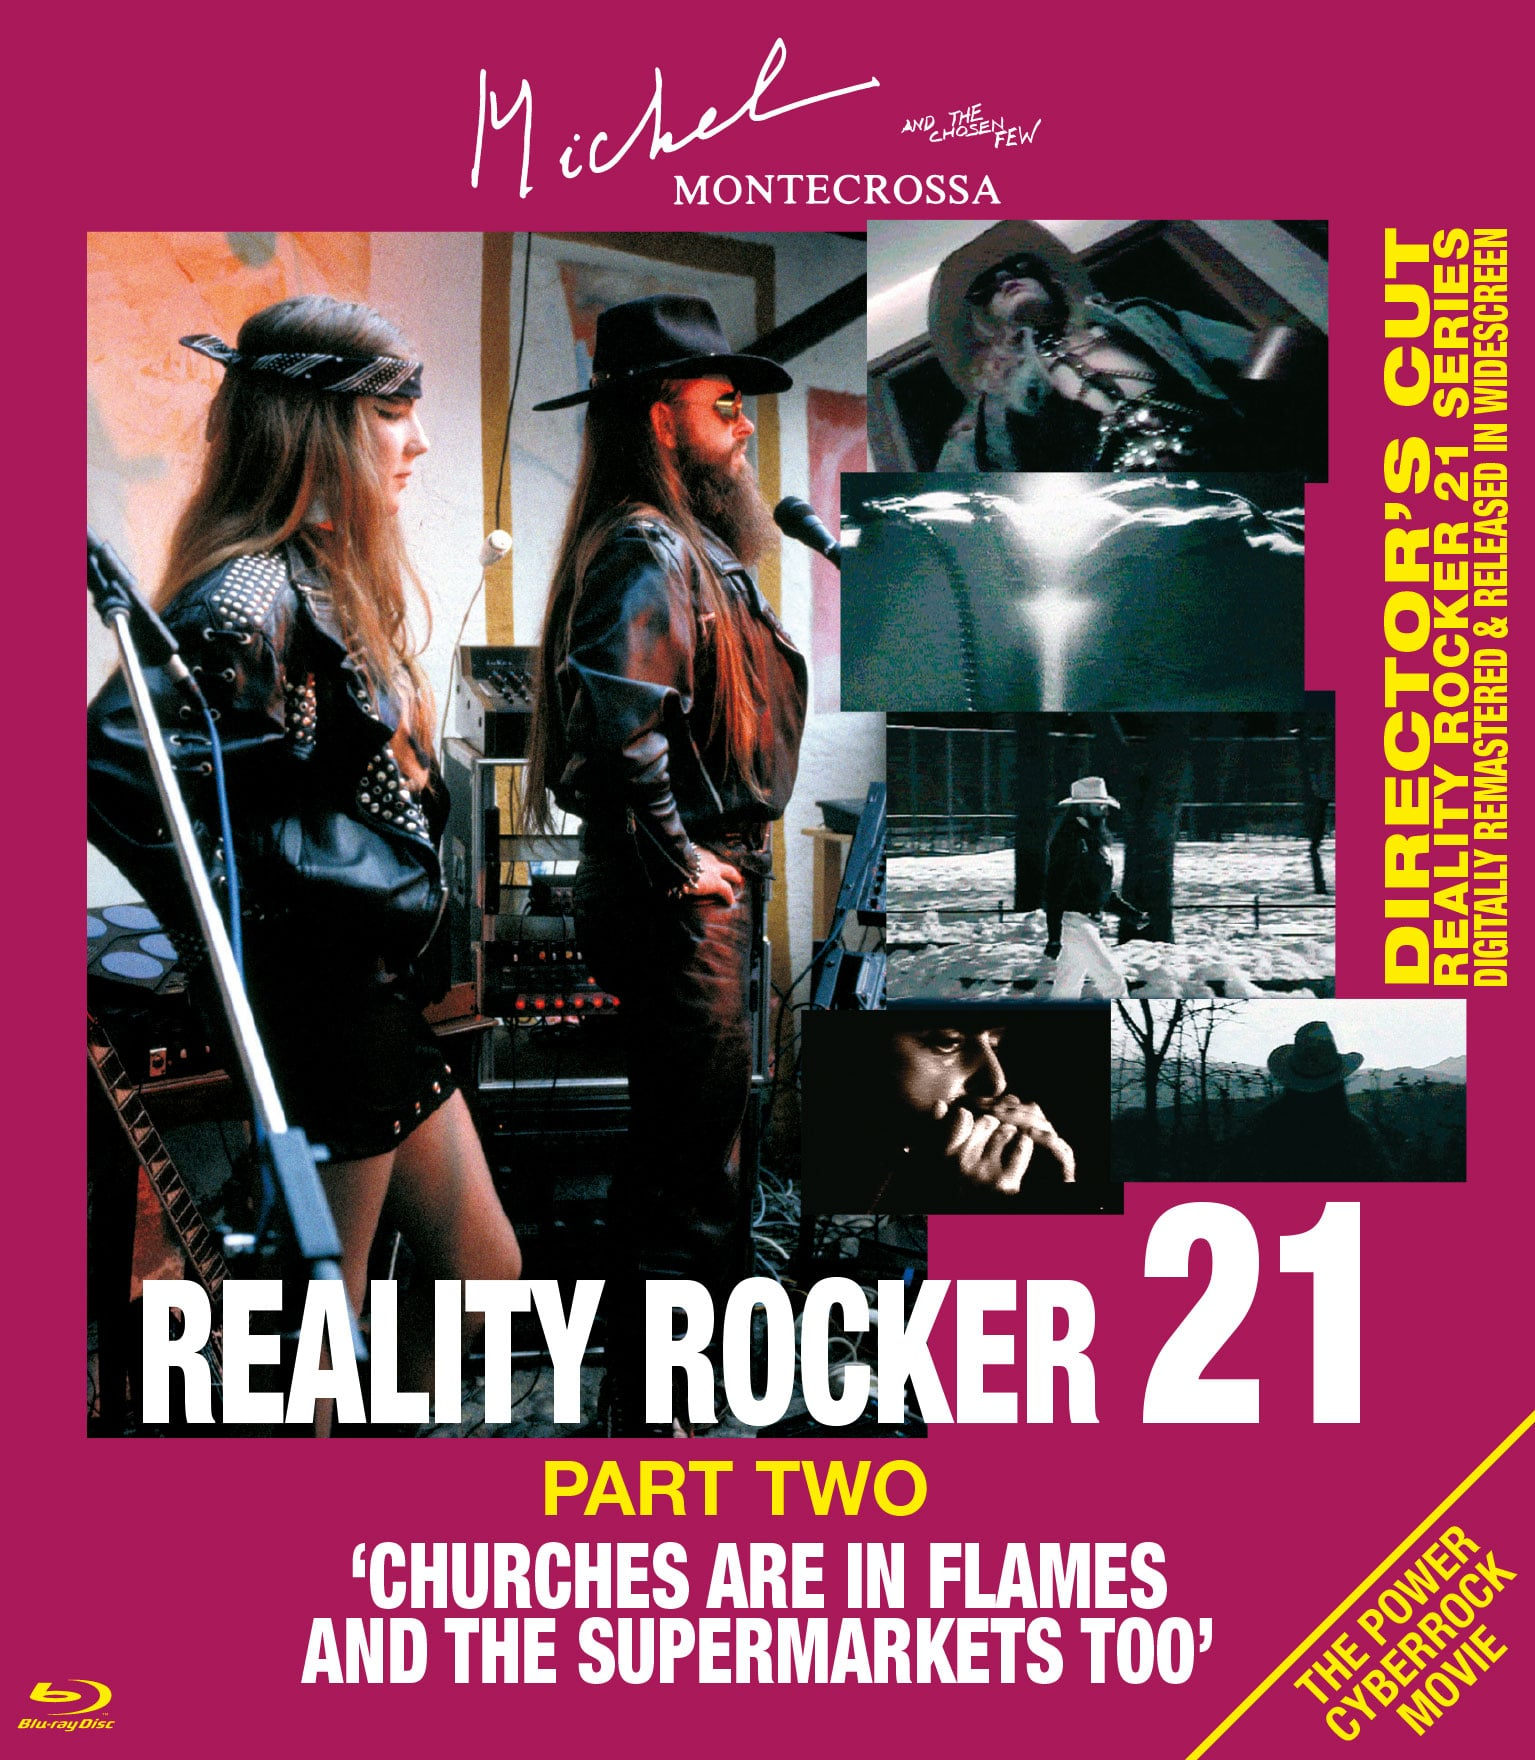 Reality Rocker 21, Part 2: Churches Are In Flames And The Supermarkets Too